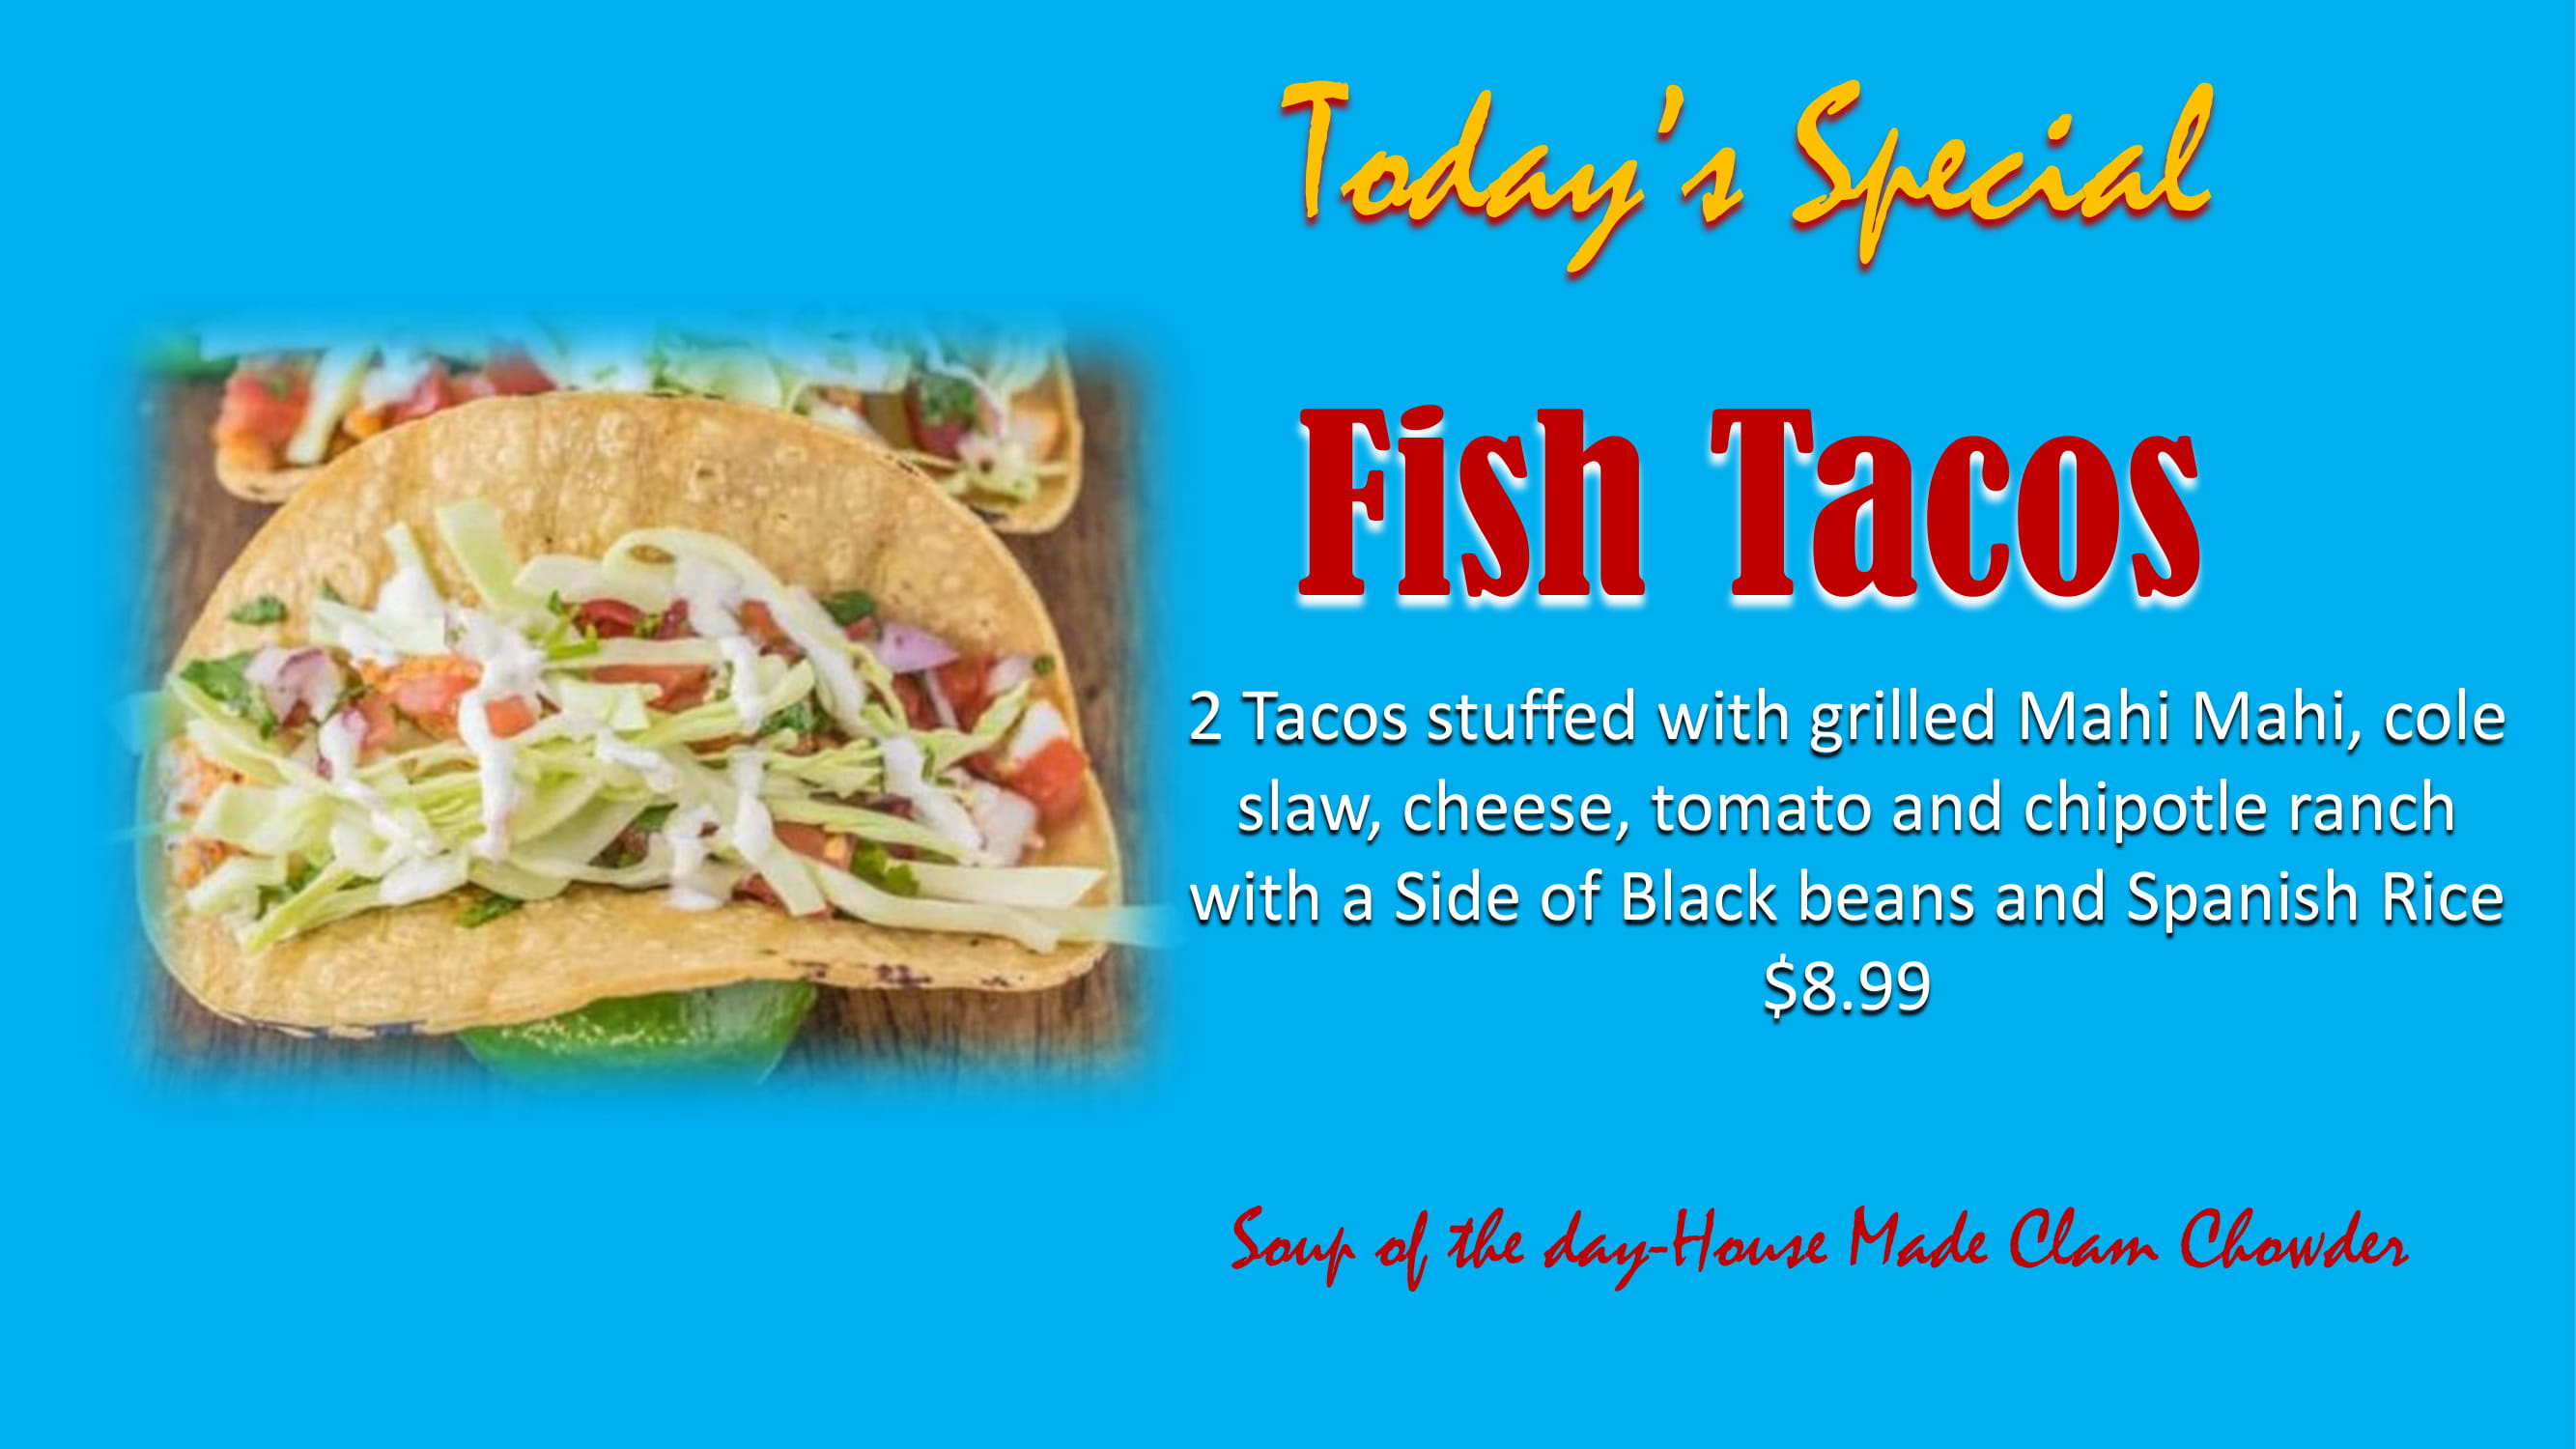 Today's Special - Fish Tacos: 2 TAcos stuffed with grilled Mahi Mahi, cole slaw, cheese, tomato and chipotle ranch with a Side of Black beans and Spanish Rice - $8.99. Soup of the day - House Made Clam Chowder